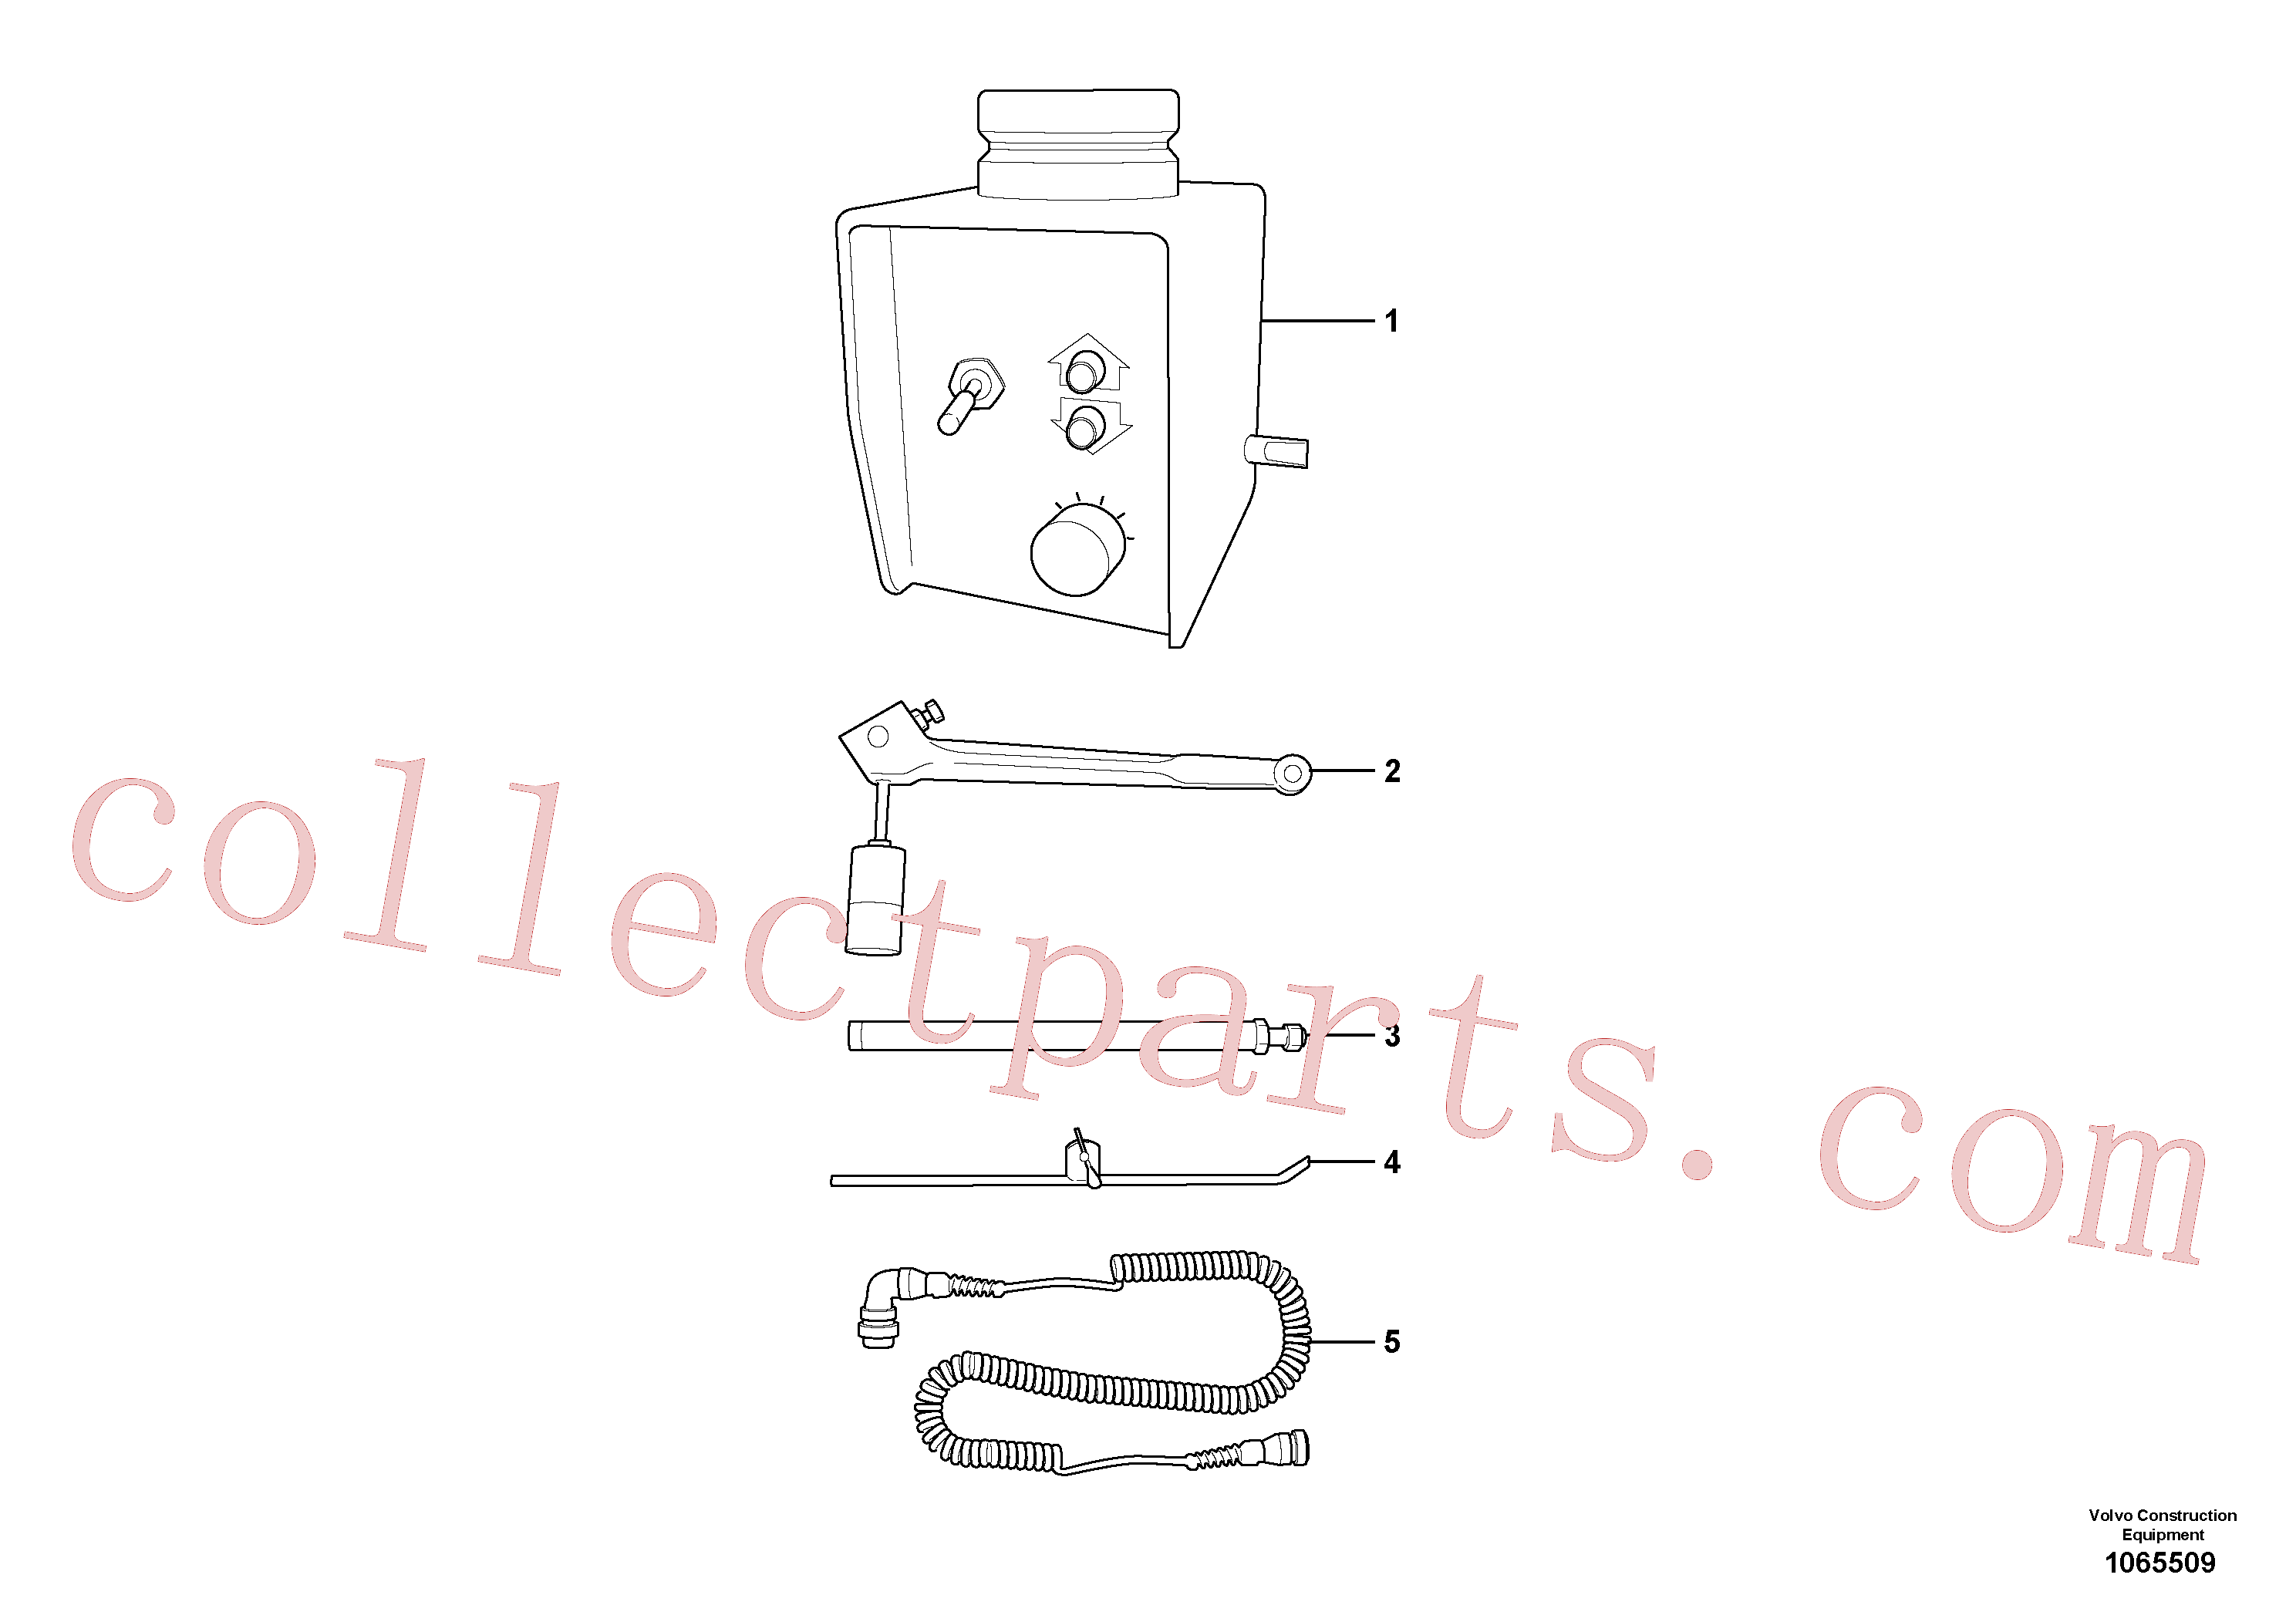 RM13913058 for Volvo Grade Control Sensor, Analog Grade Sensor(1065509 assembly)